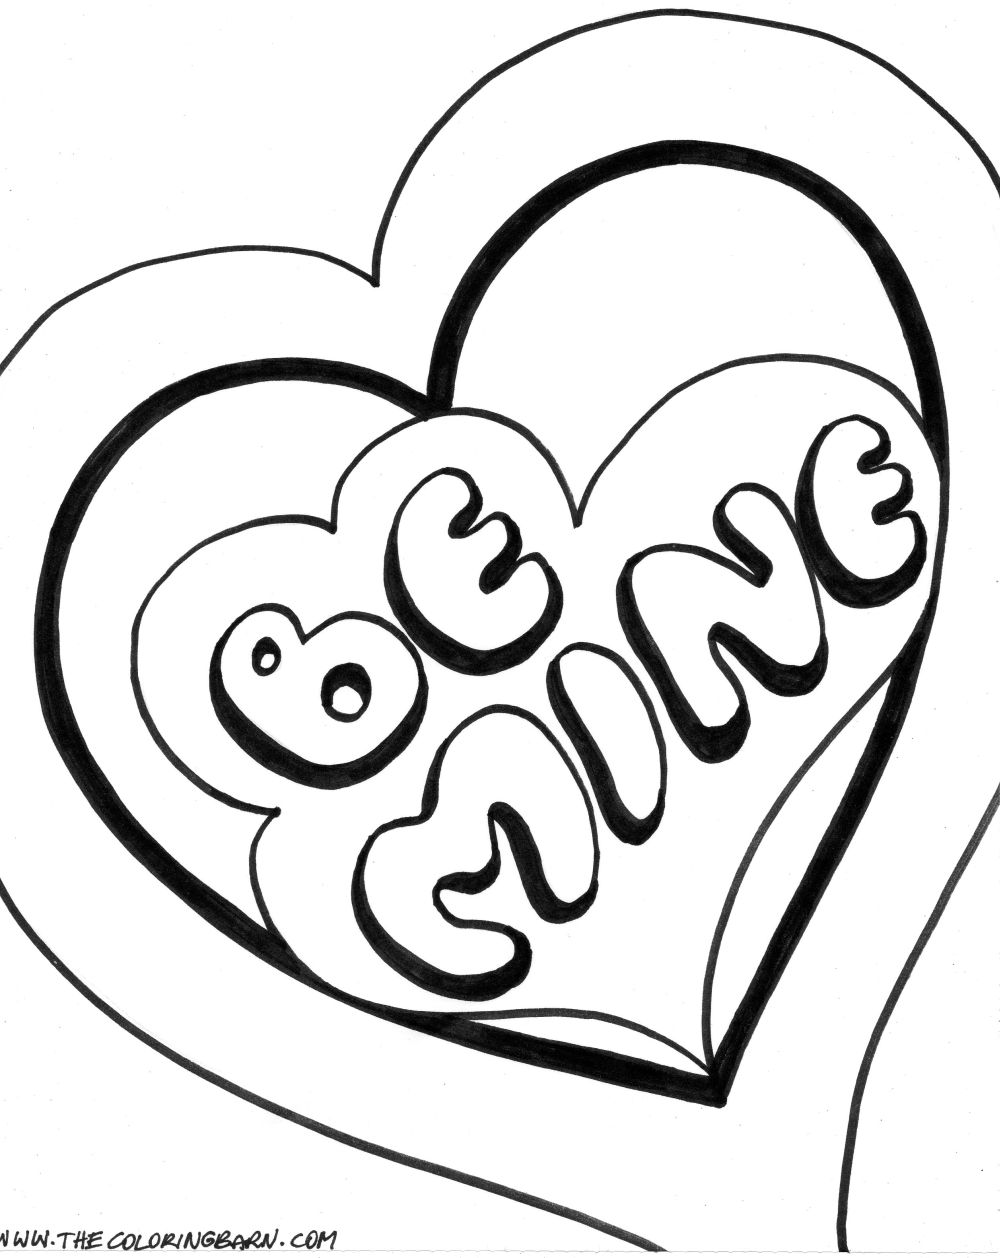 Valentine Hearts Drawing At Getdrawings Com Free For Personal Use Pictures To Color Coloring Pages